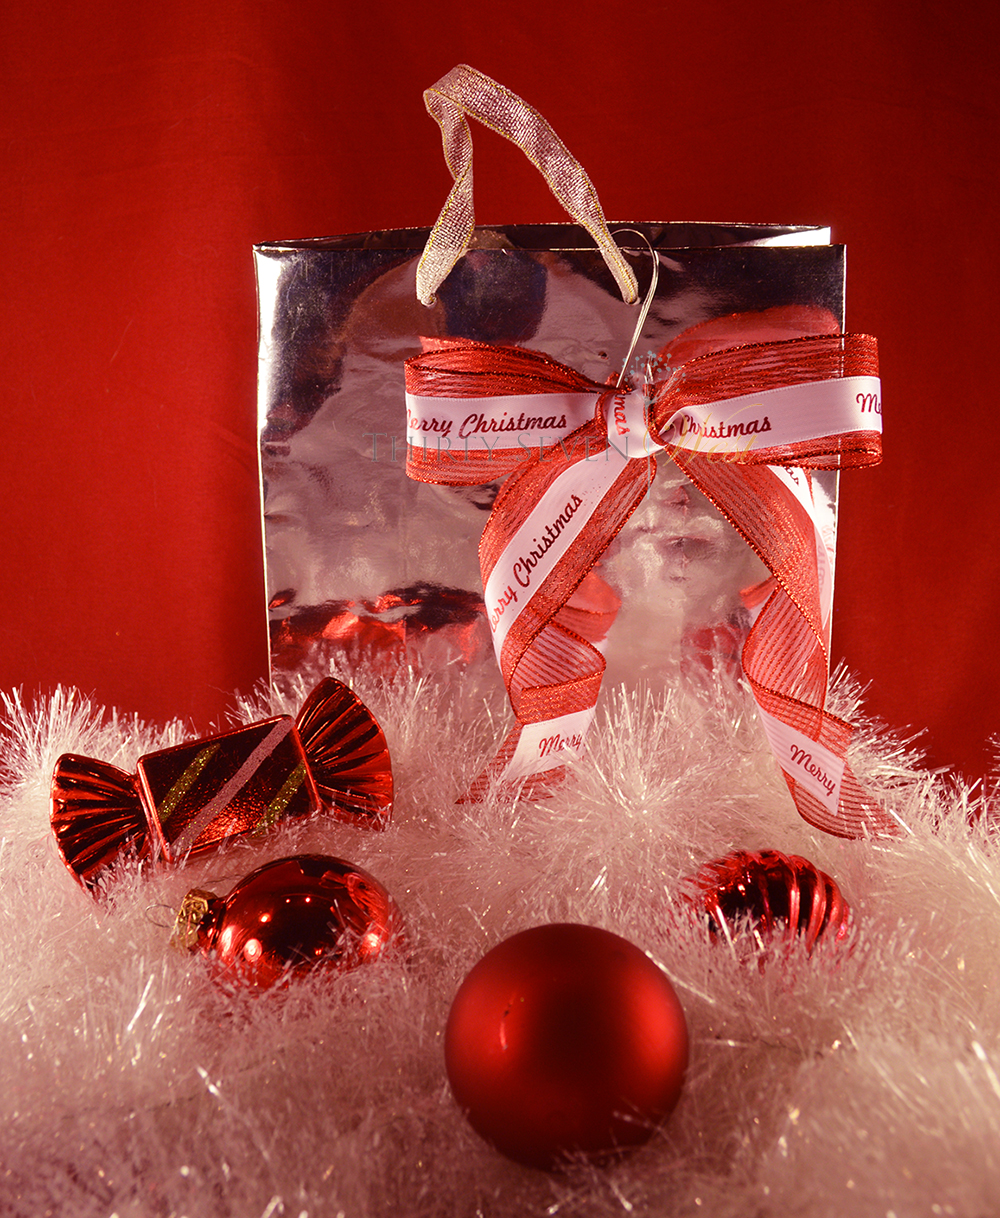 Personalized Printed Ribbon to reasonably and inexpensively brand your gift this year.